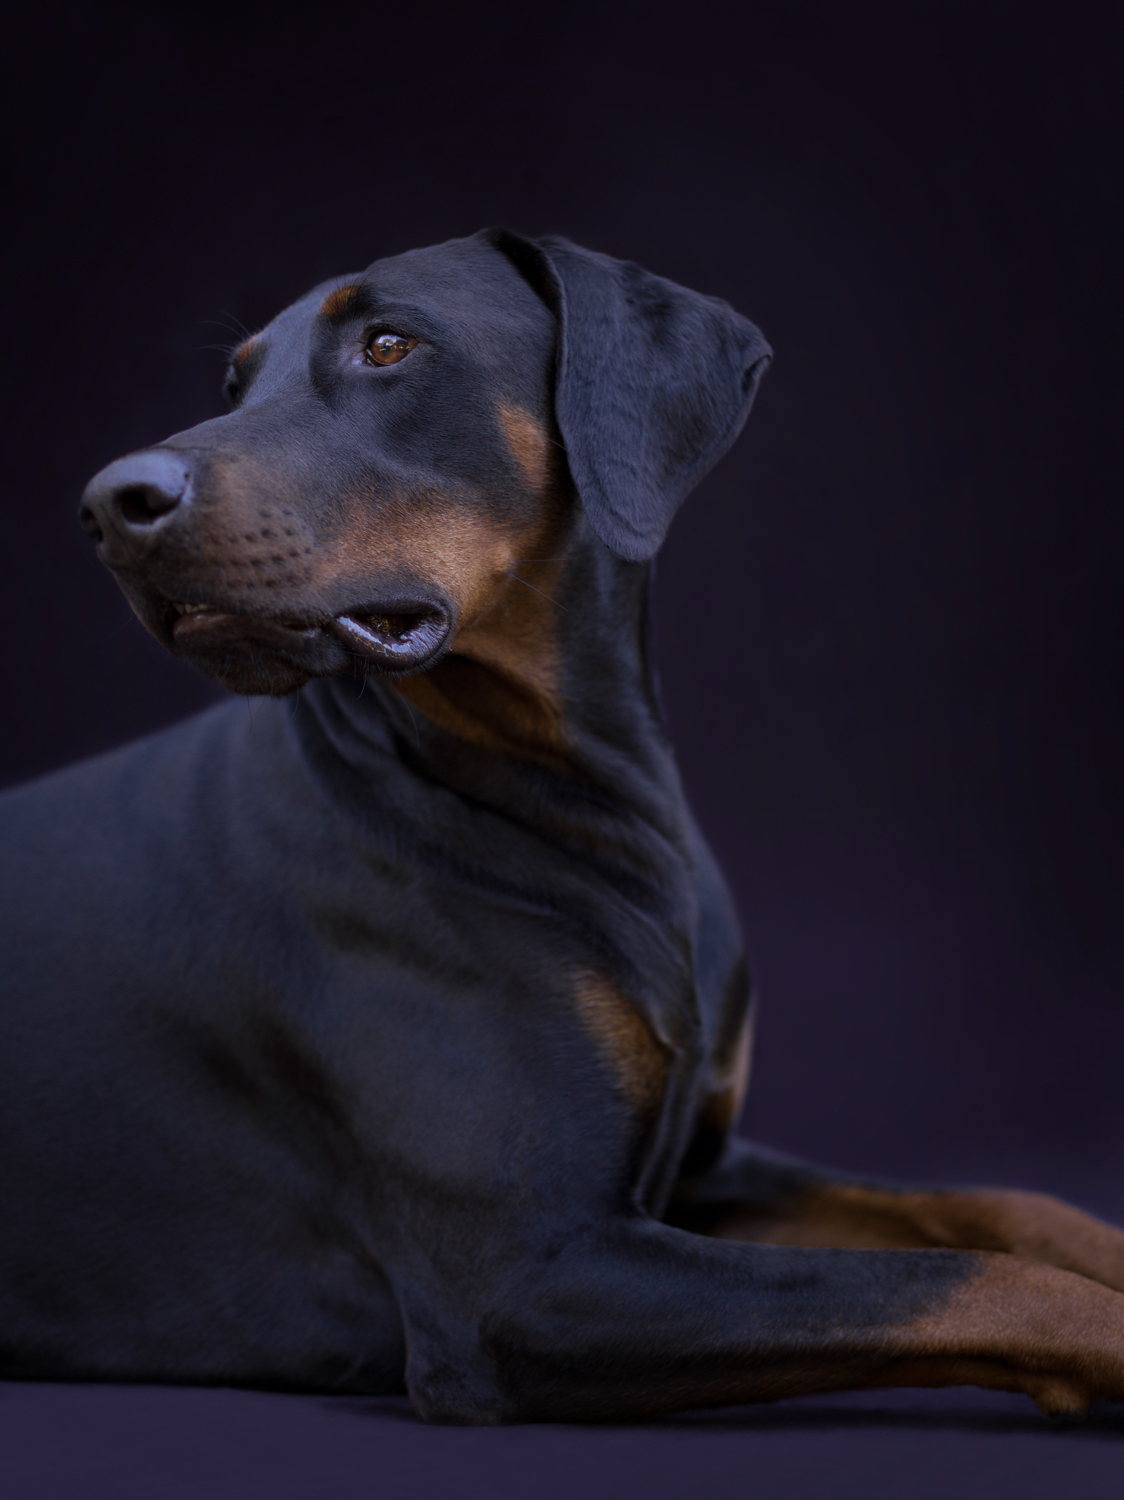 Doberman Dog photographed against Black Background, lying down facing to the right, head turned looking to left